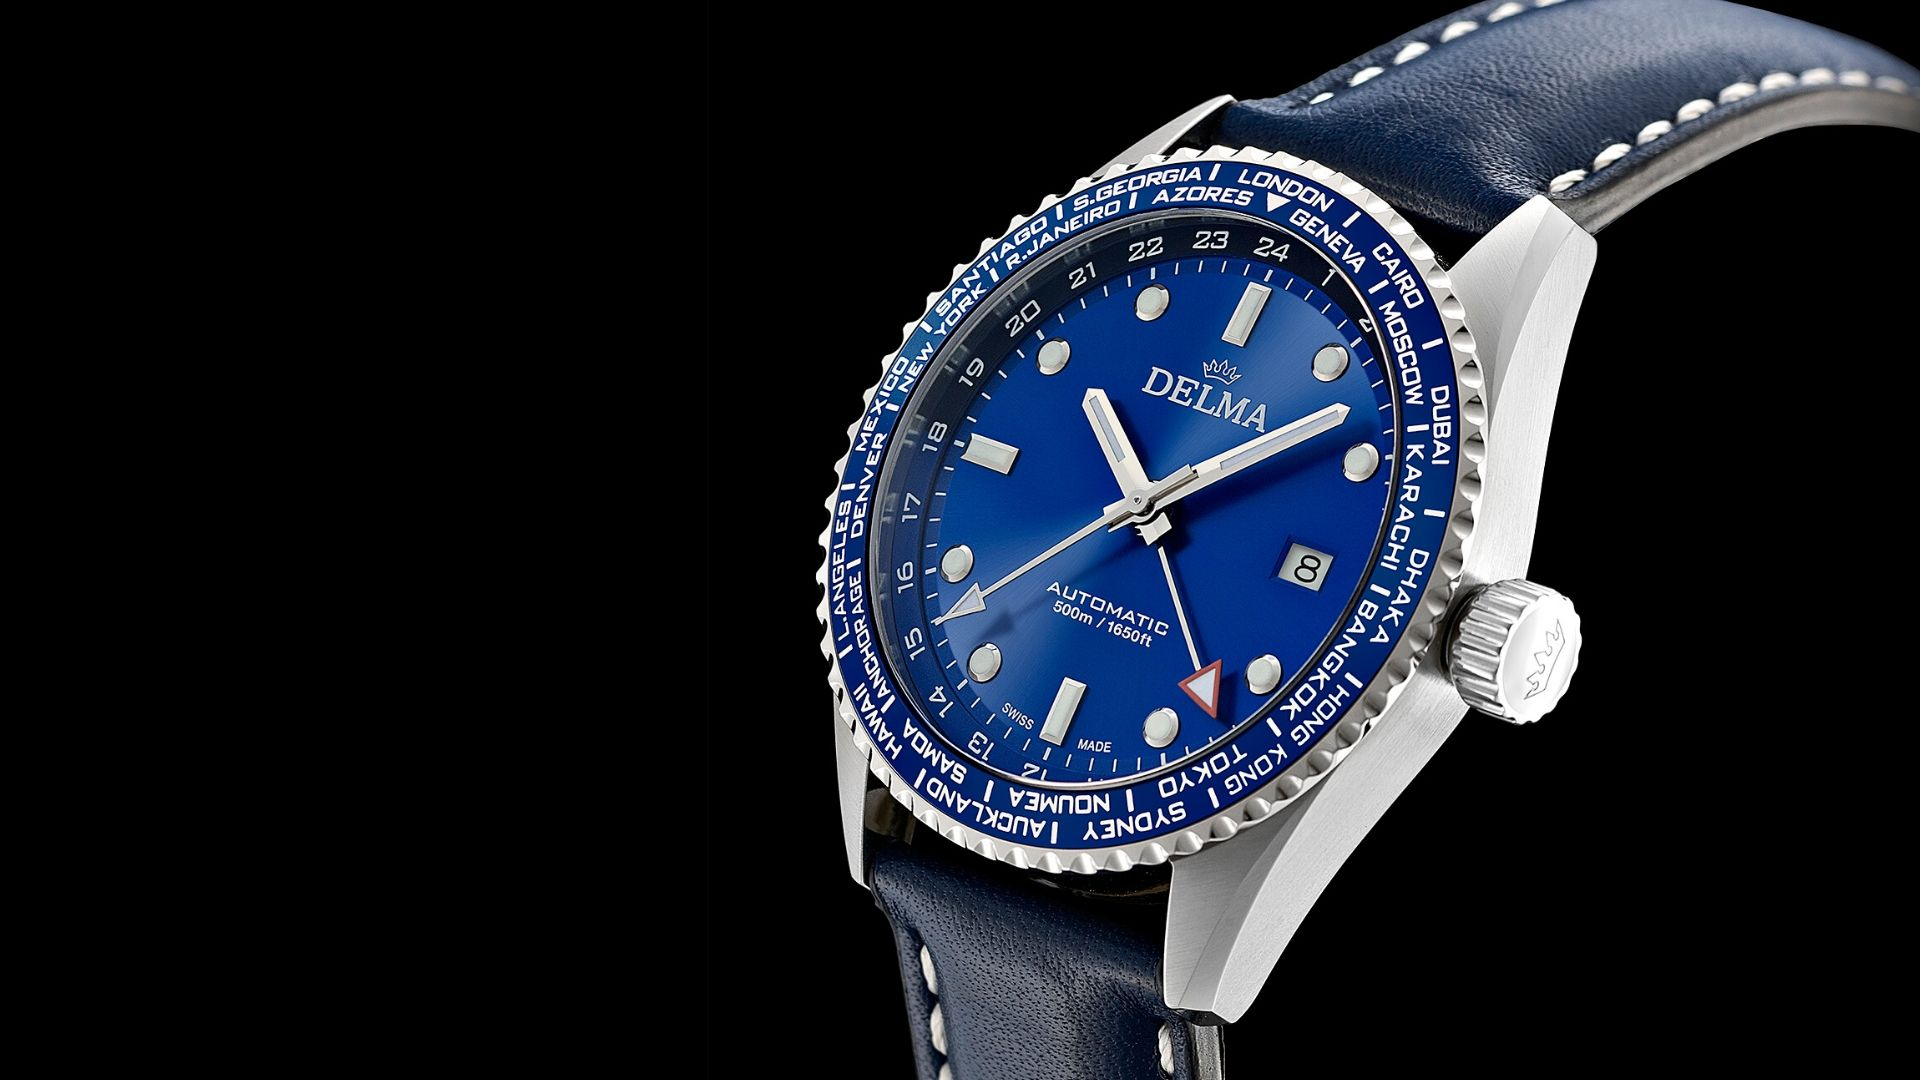 24 time zones at a glance with the Delma Cayman Worldtimer